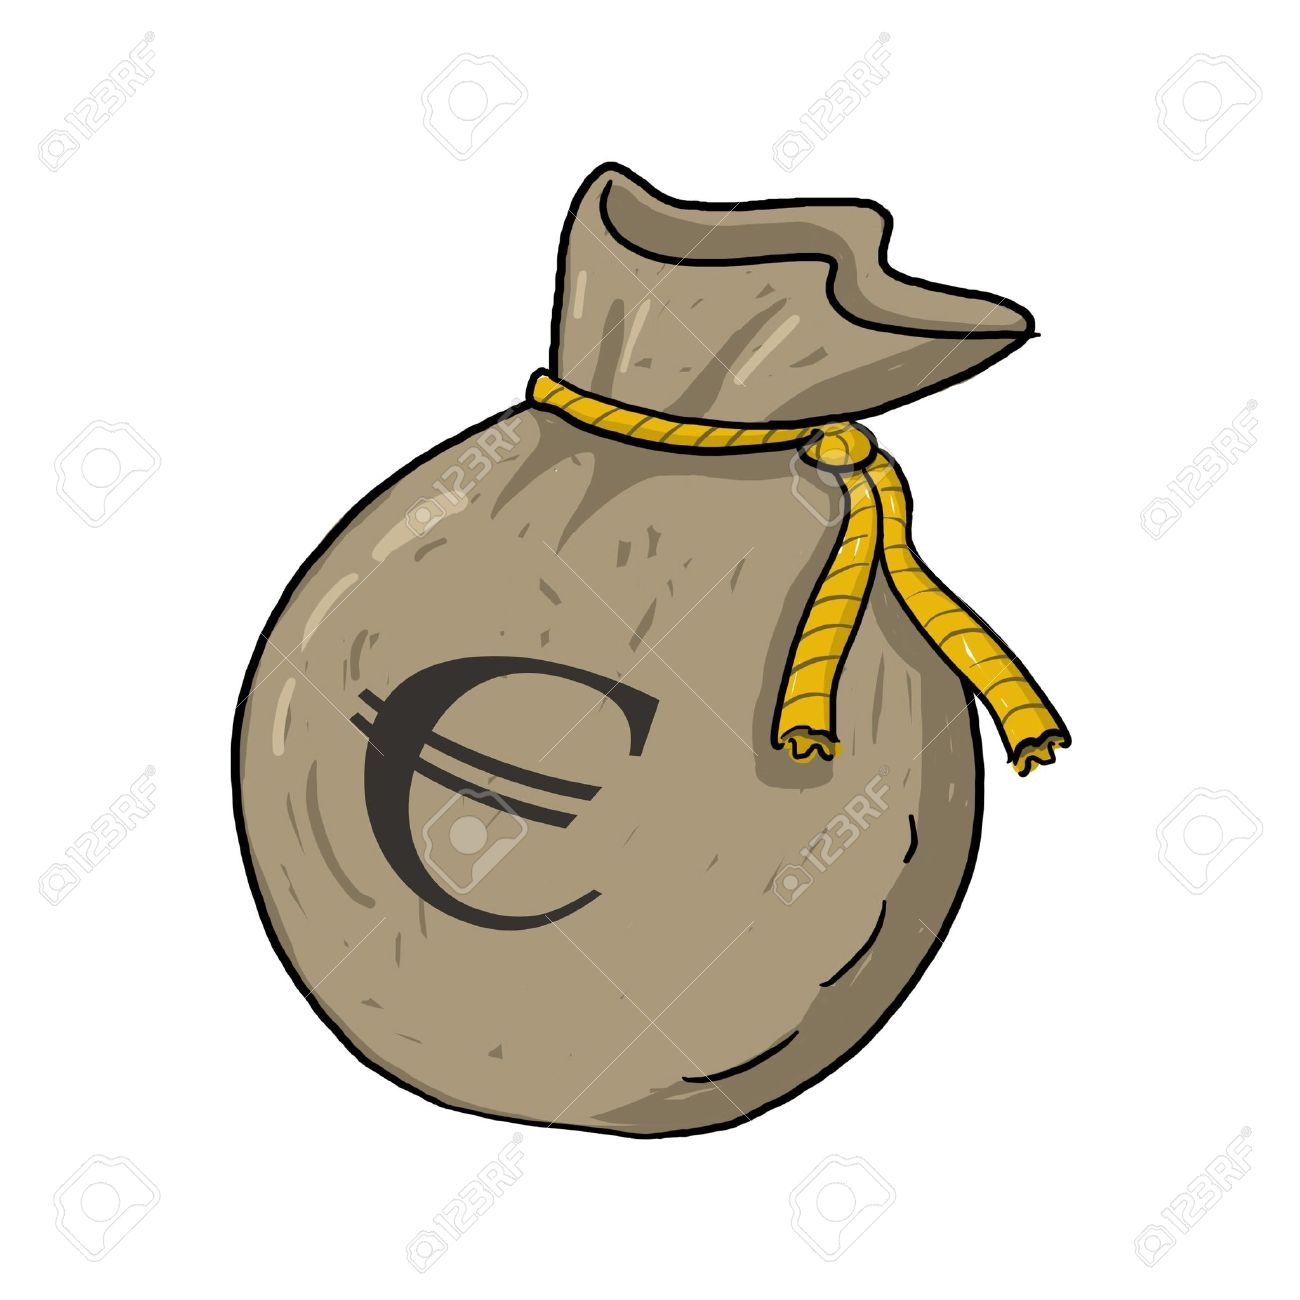 Sack Of Money Illustration With Euro Sign Brown Bag Full Of Stock